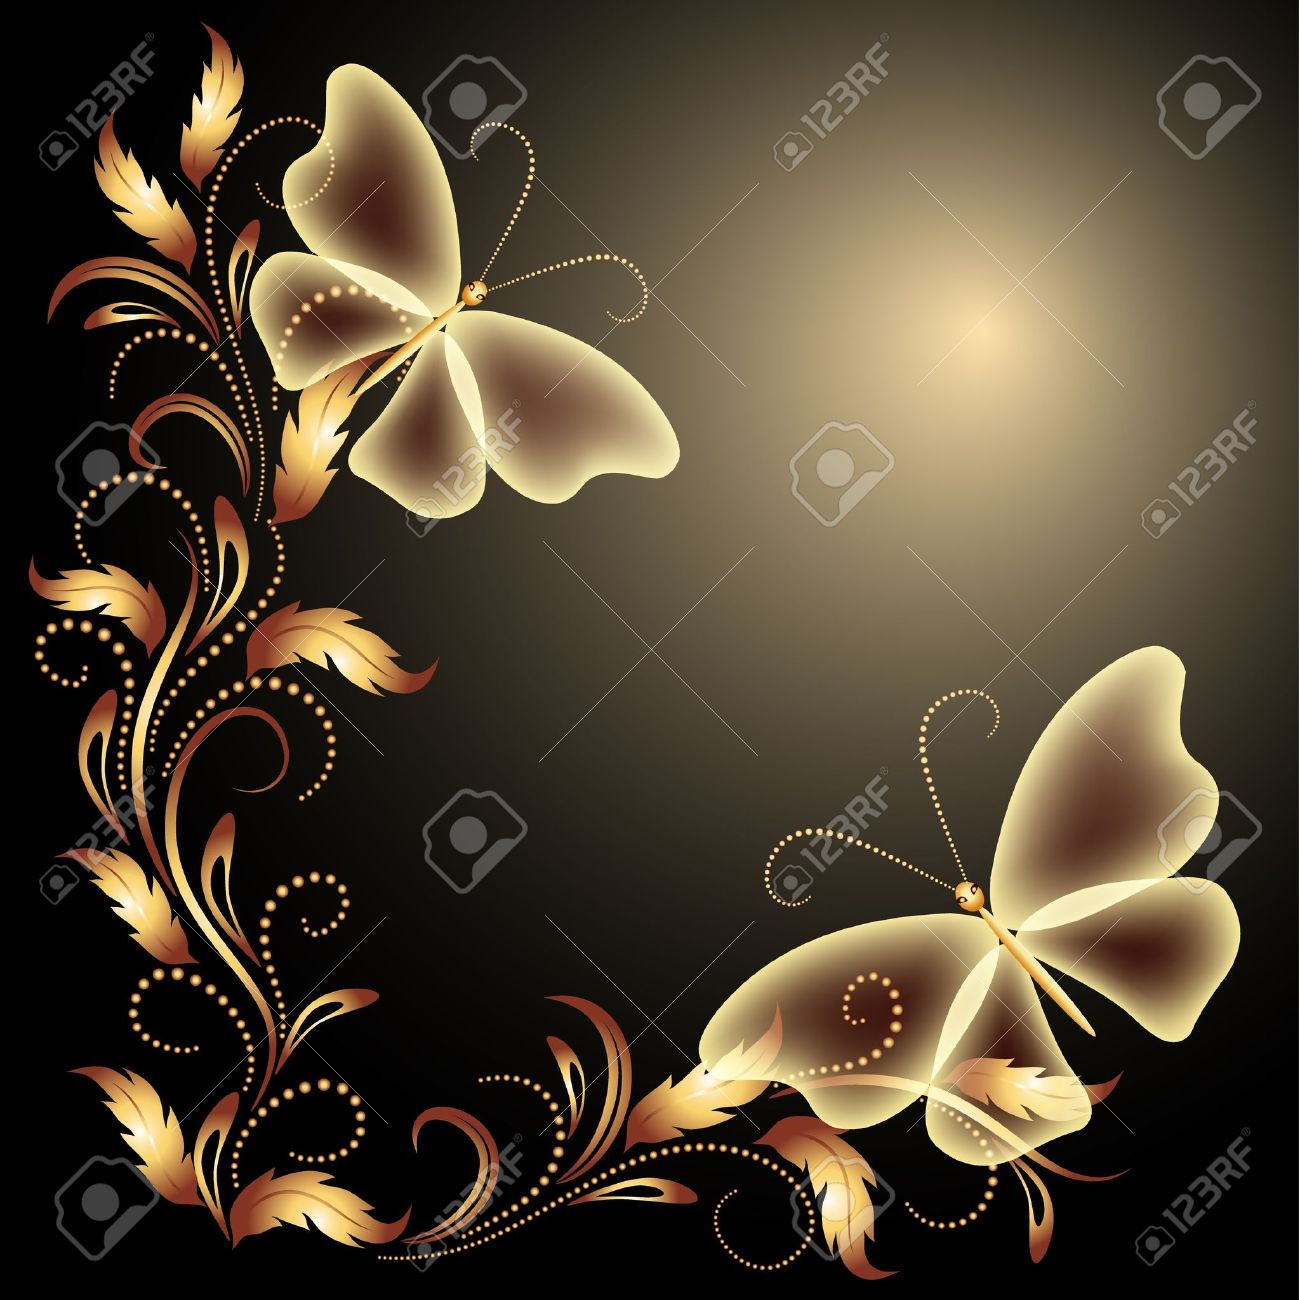 Background with butterflies and golden ornament - 13531813